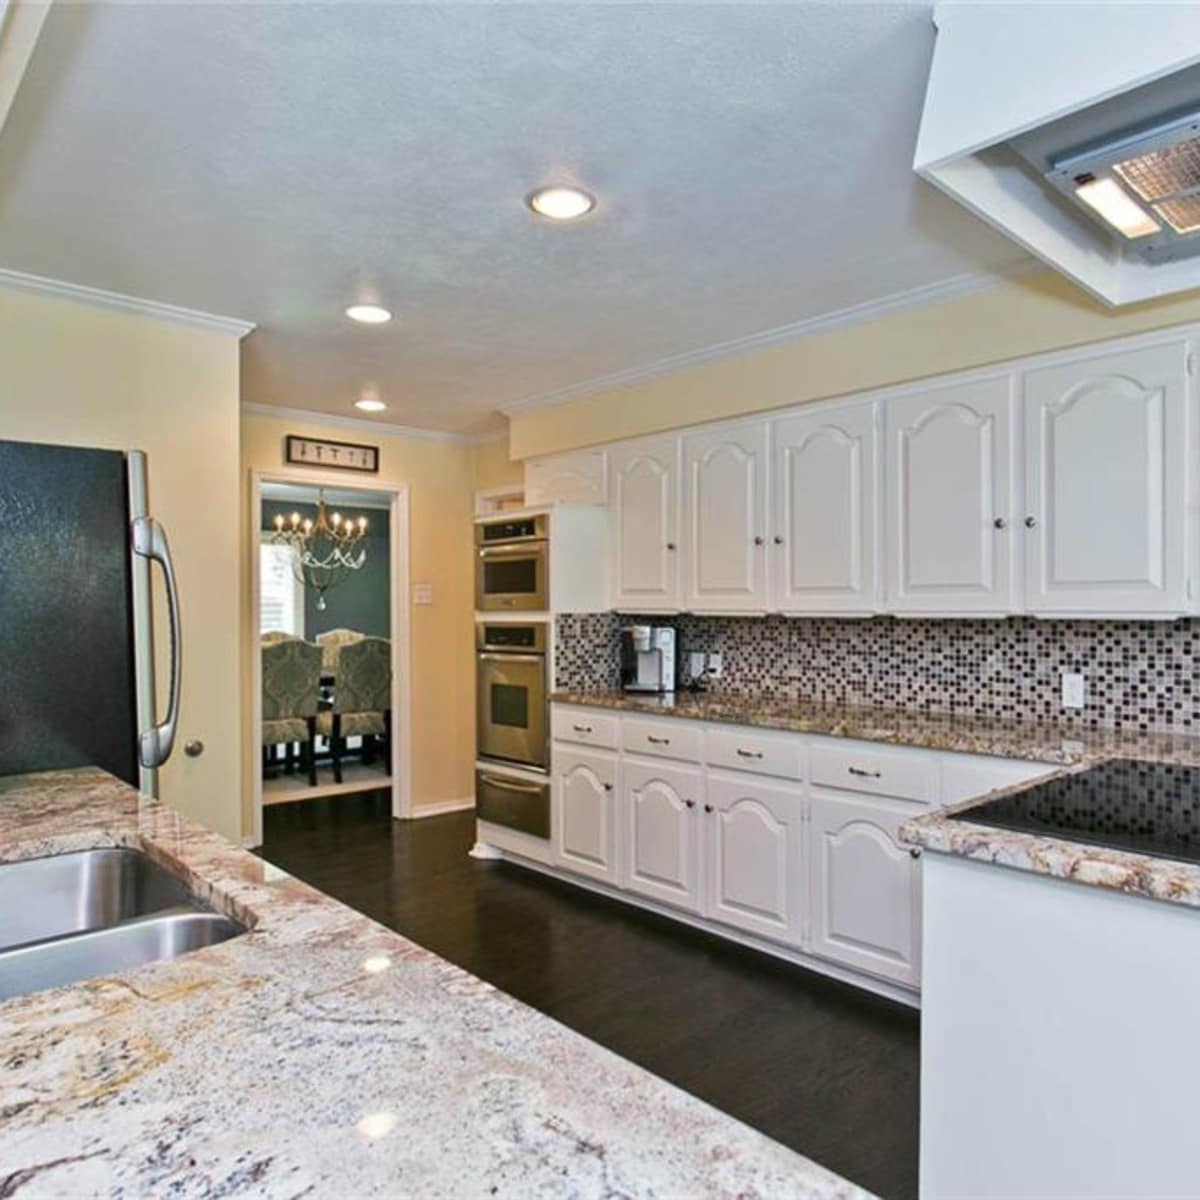 Kitchen at 9722 Boedecker in Dallas